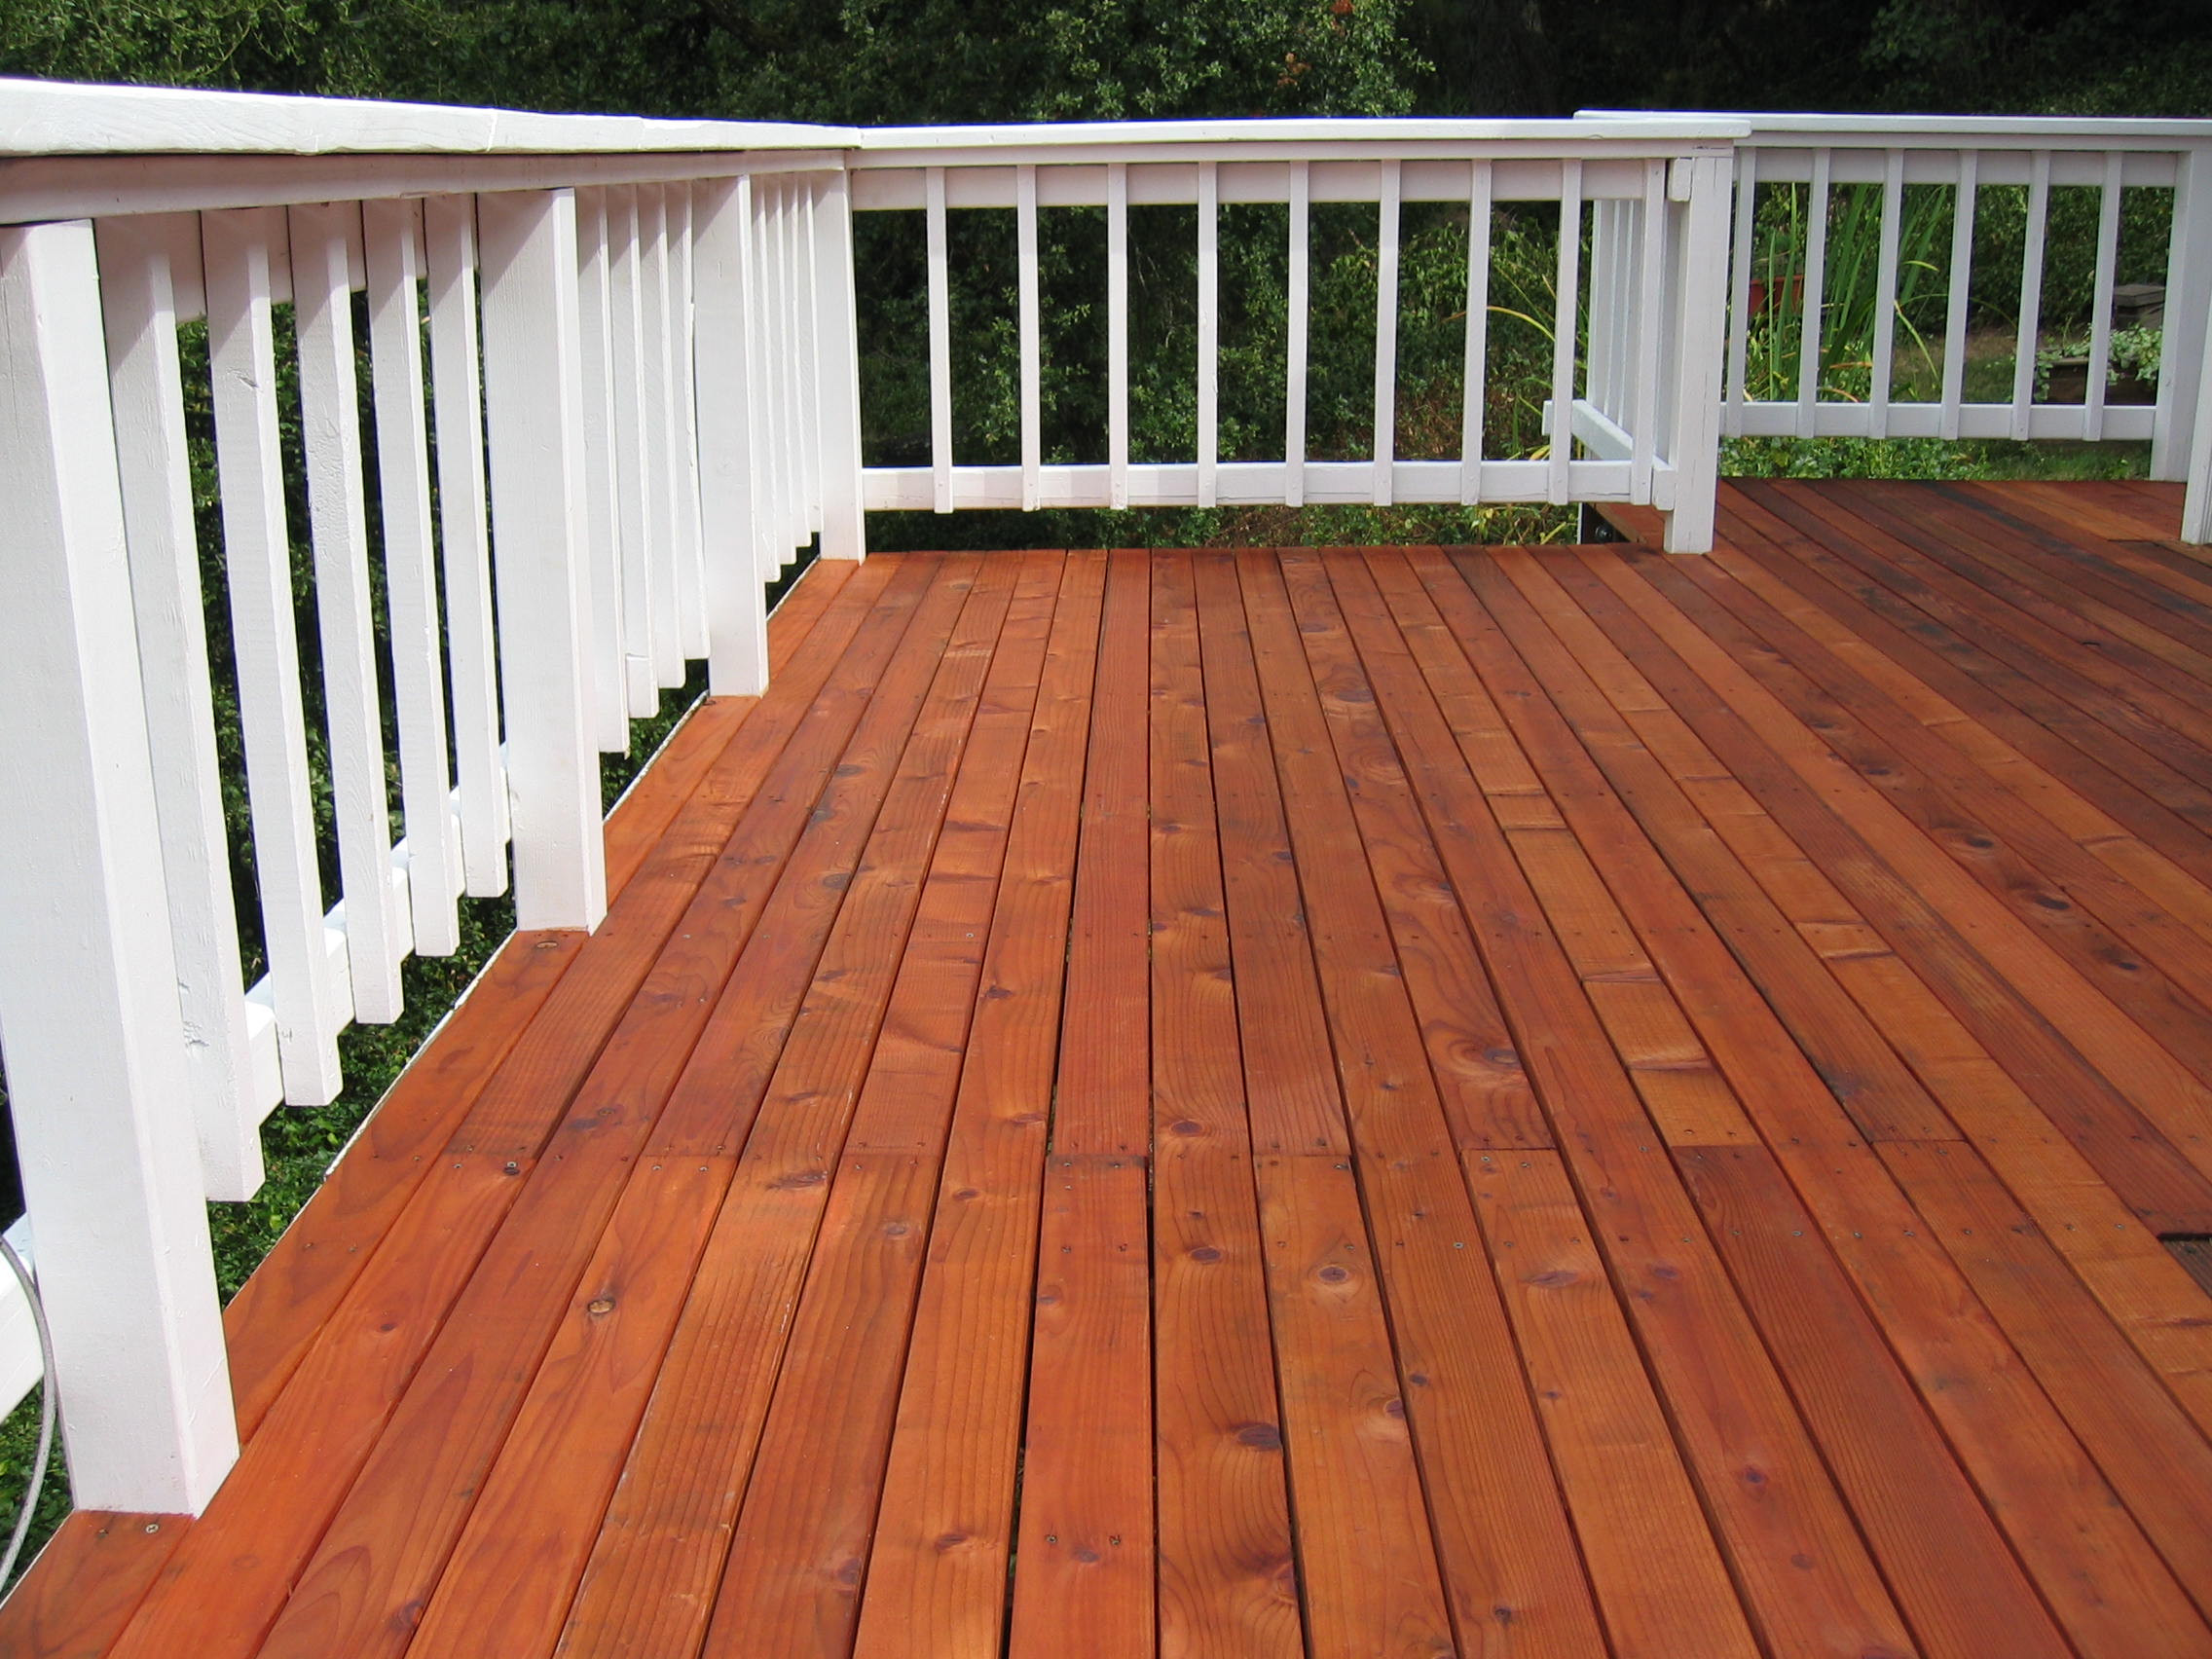 Best Deck Restoration Paint  Deck refinishing sanded stained & sealed